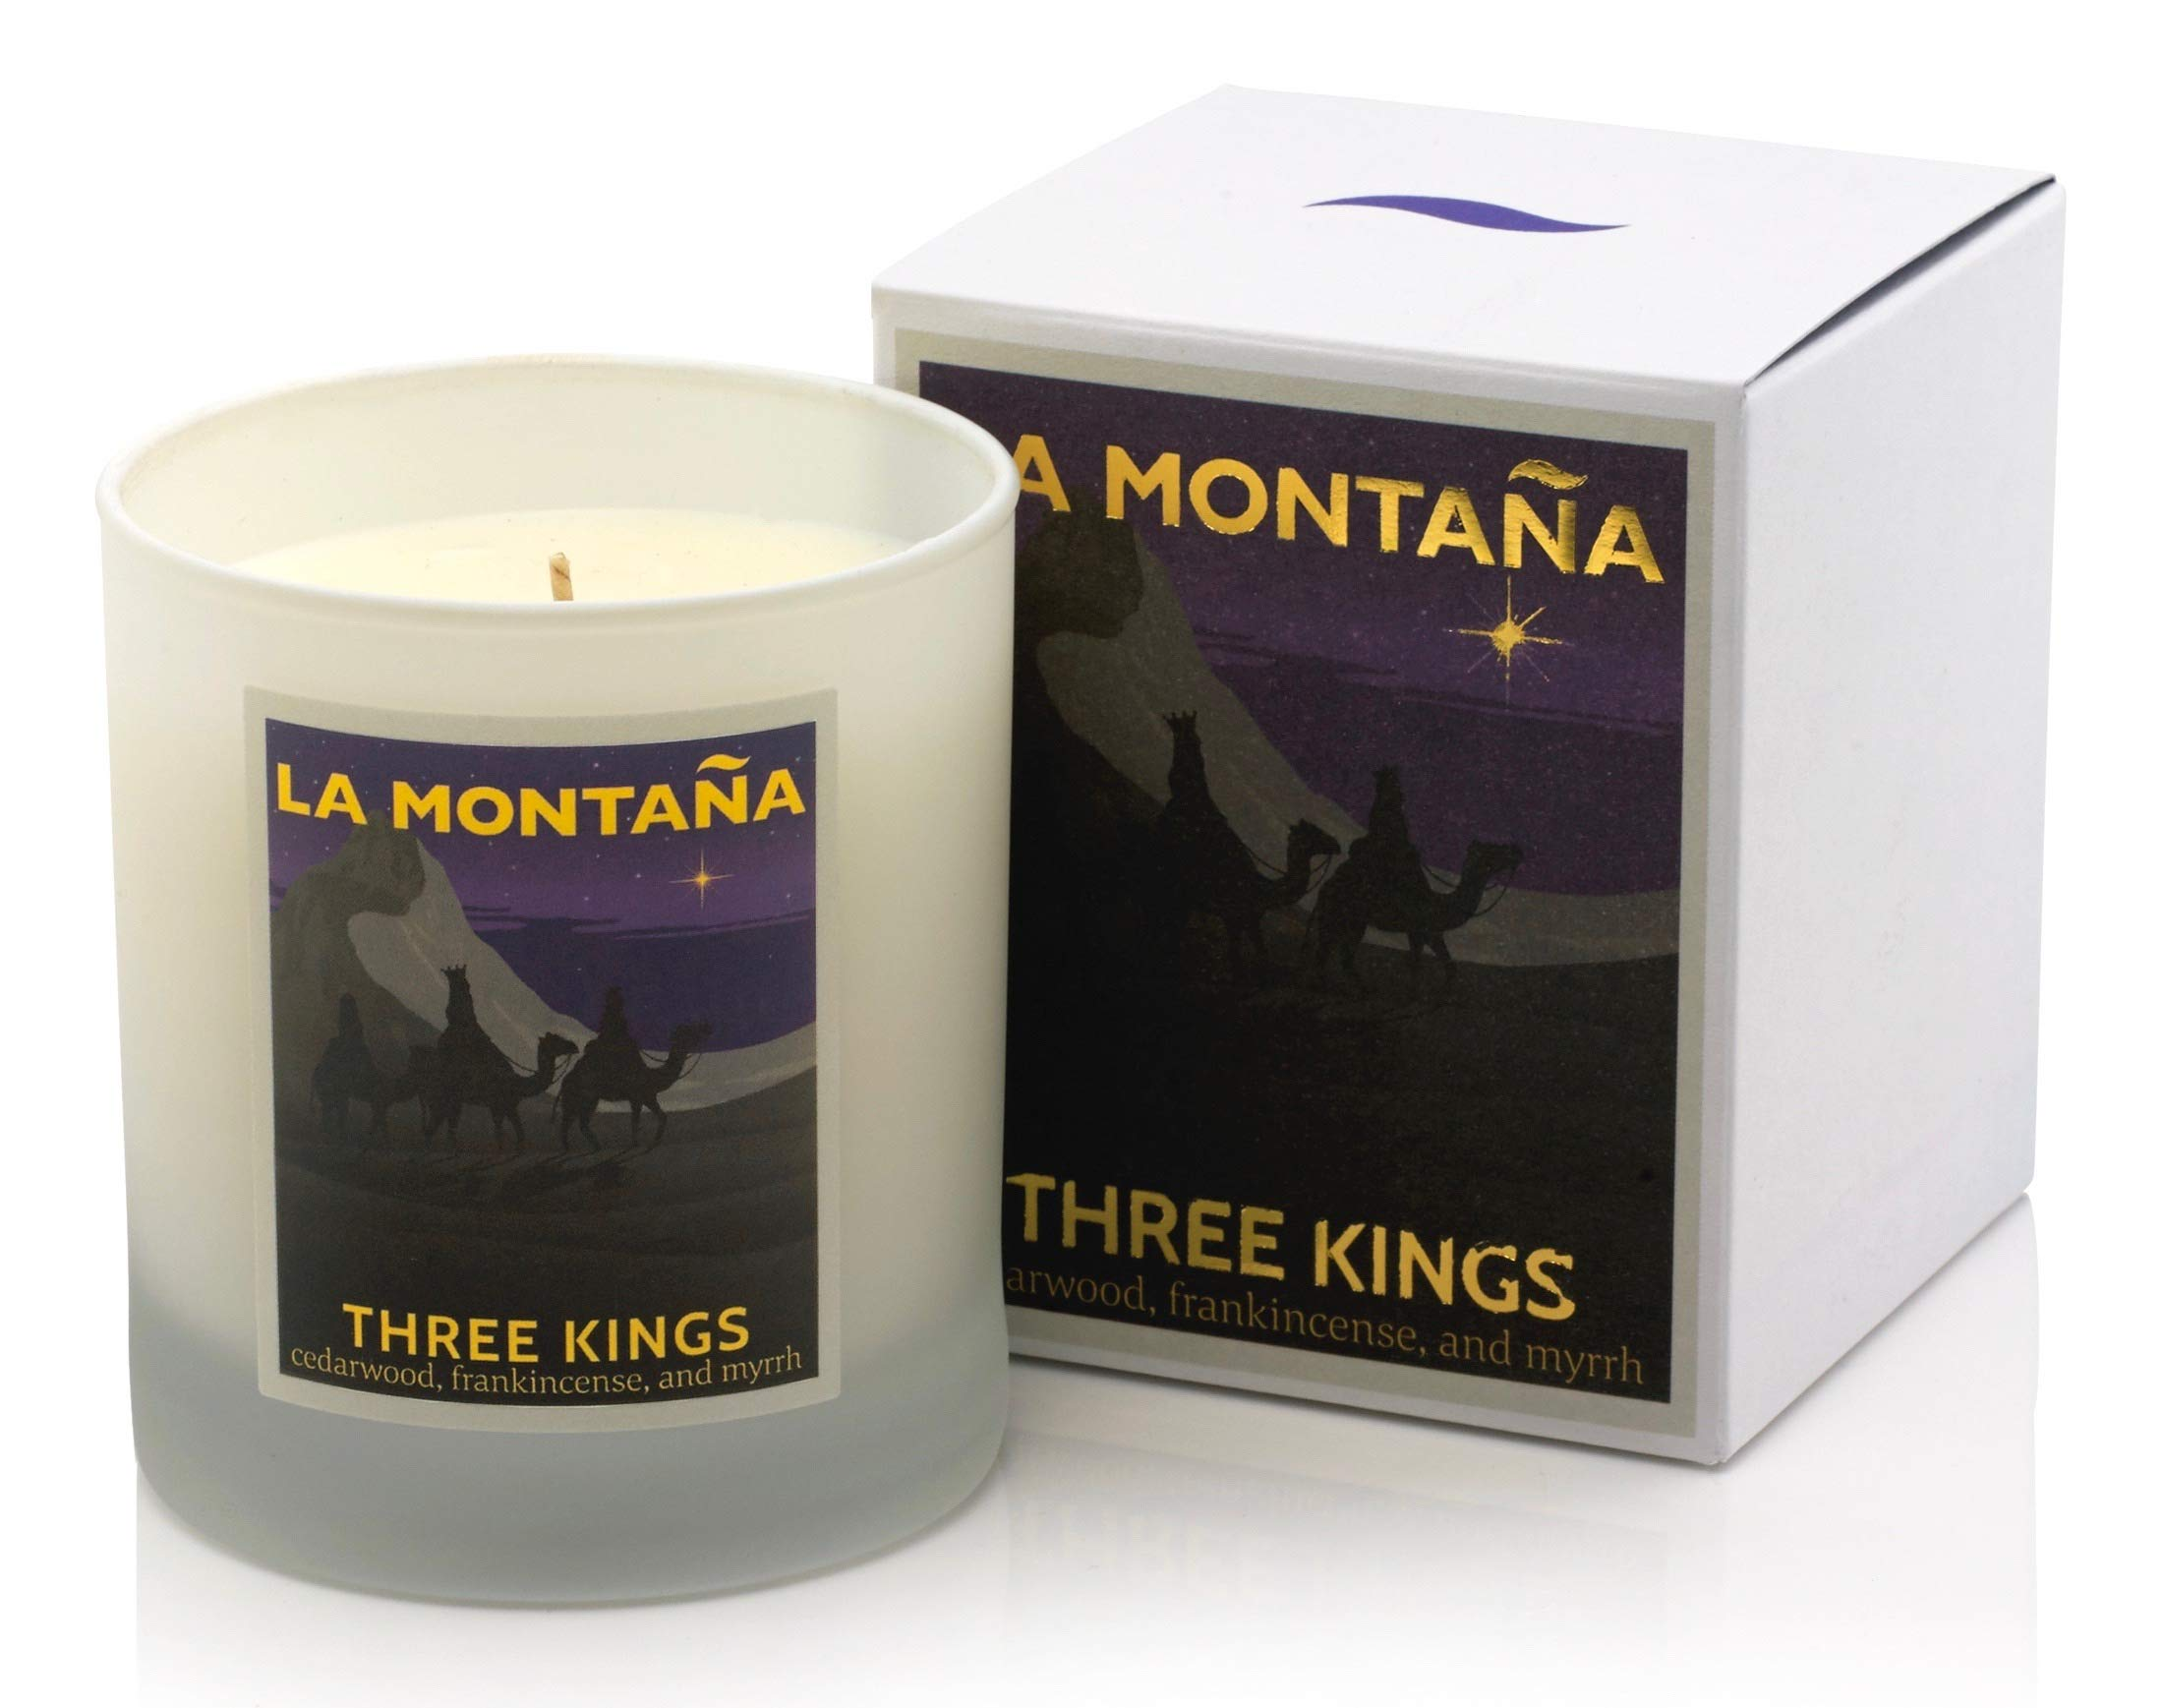 Three Kings' Luxury Scented Candle. Warm, Rich, and Magnificently Spanish - with Notes of Cedarwood, Pine, Frankincense, Myrrh, Nougat and Brandy. 220gm - 40 Hours' Burn Time.